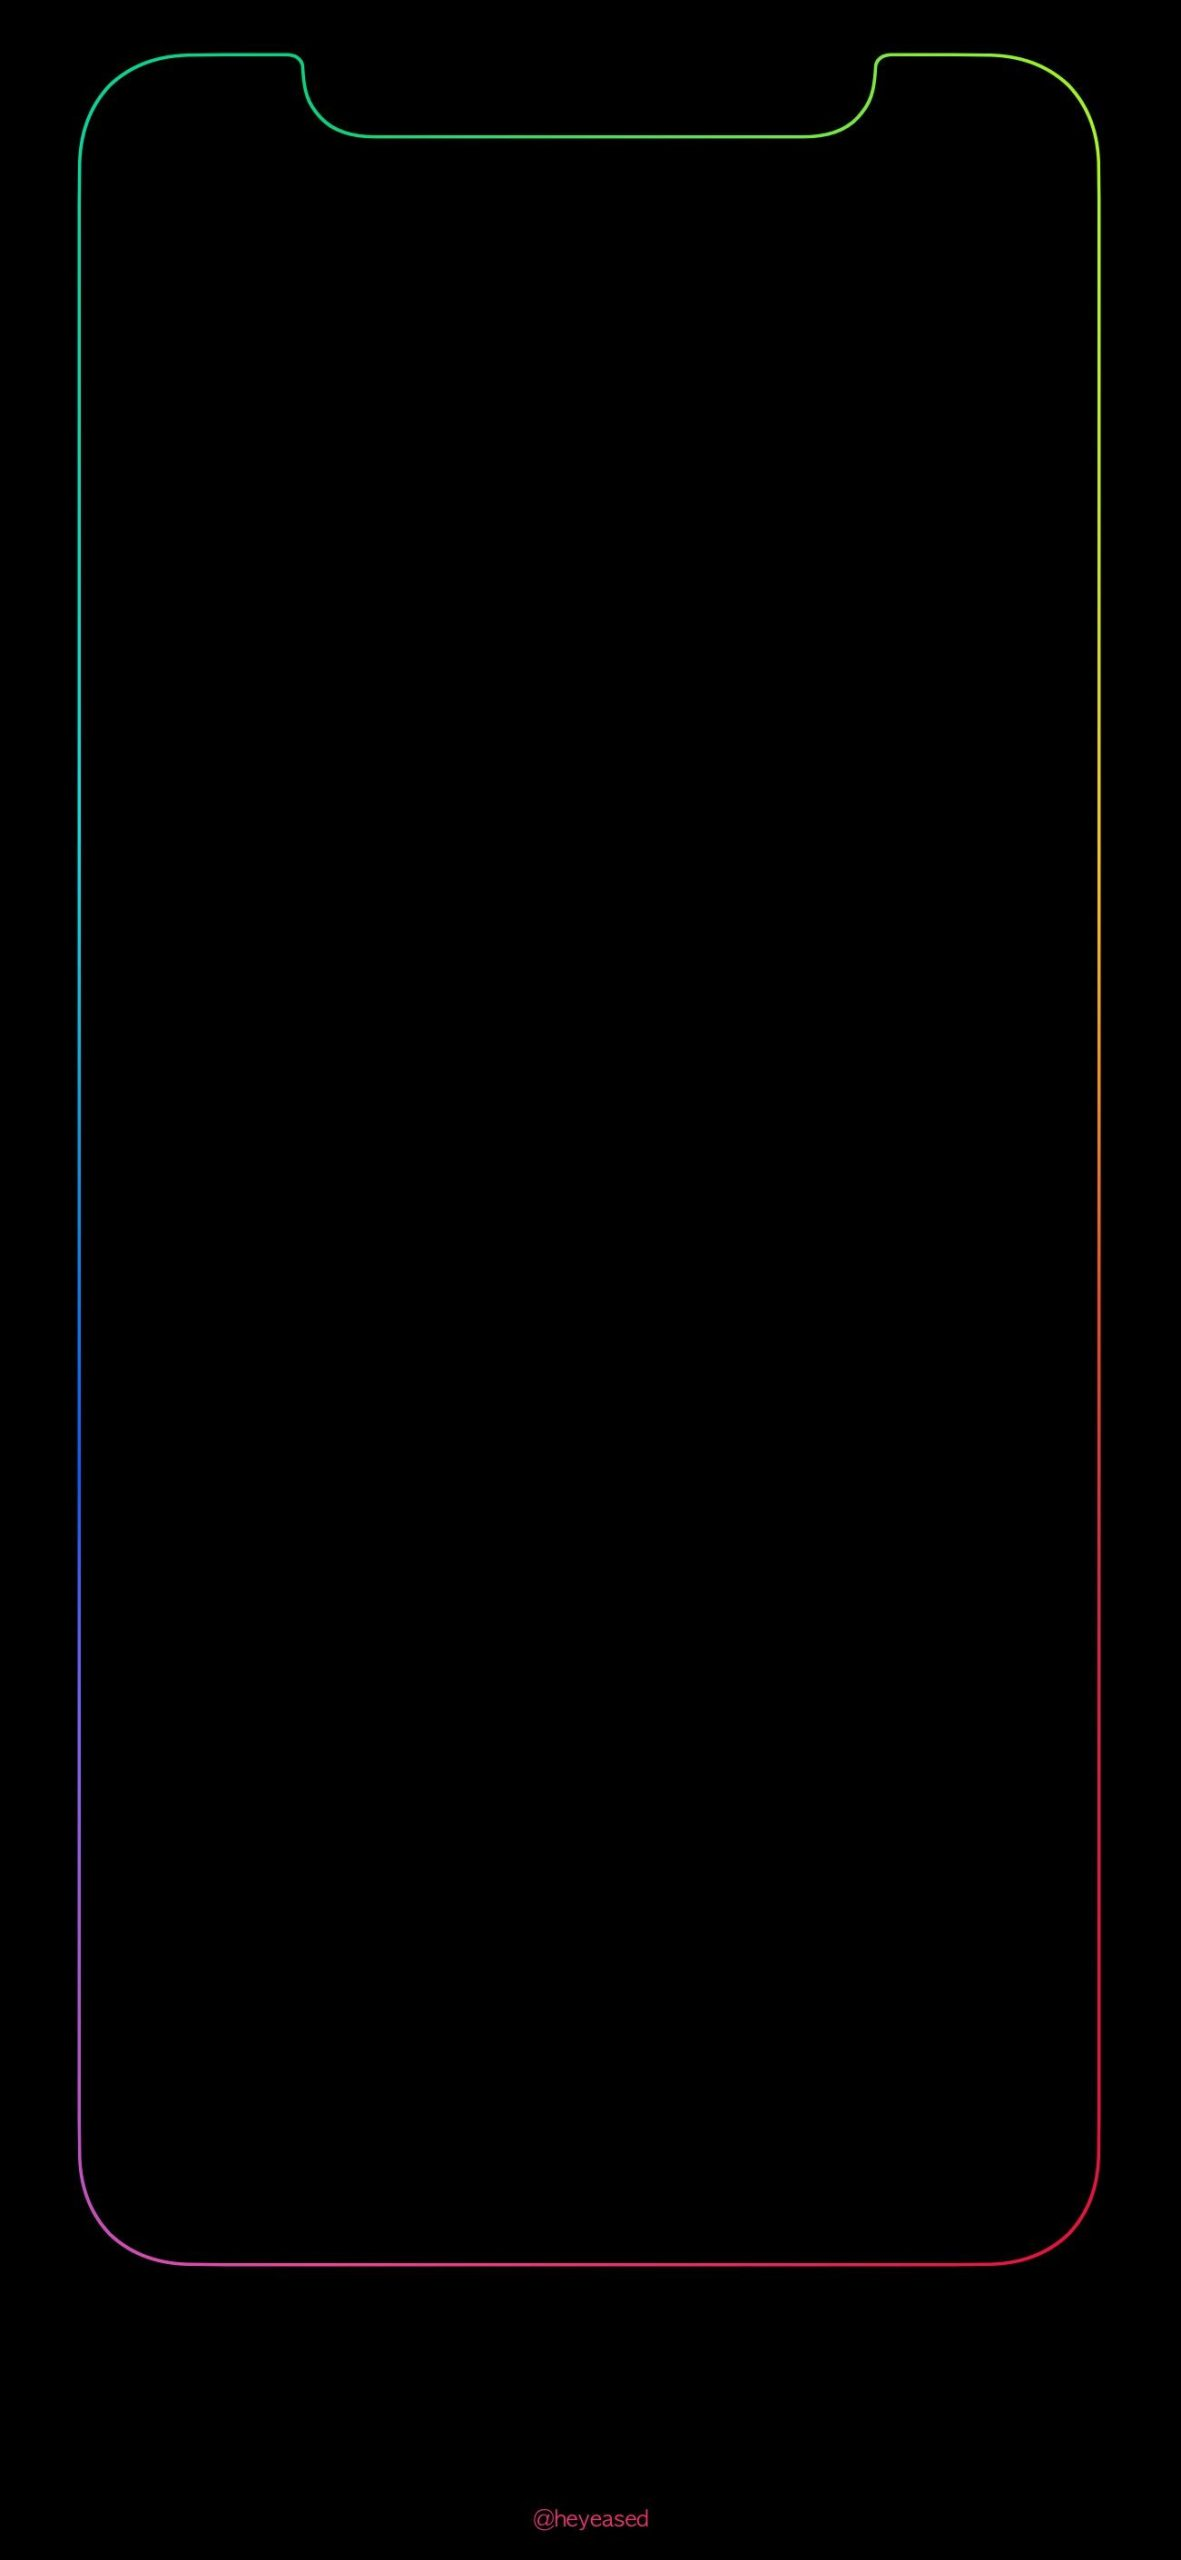 iphone 11 pro true black wallpapers